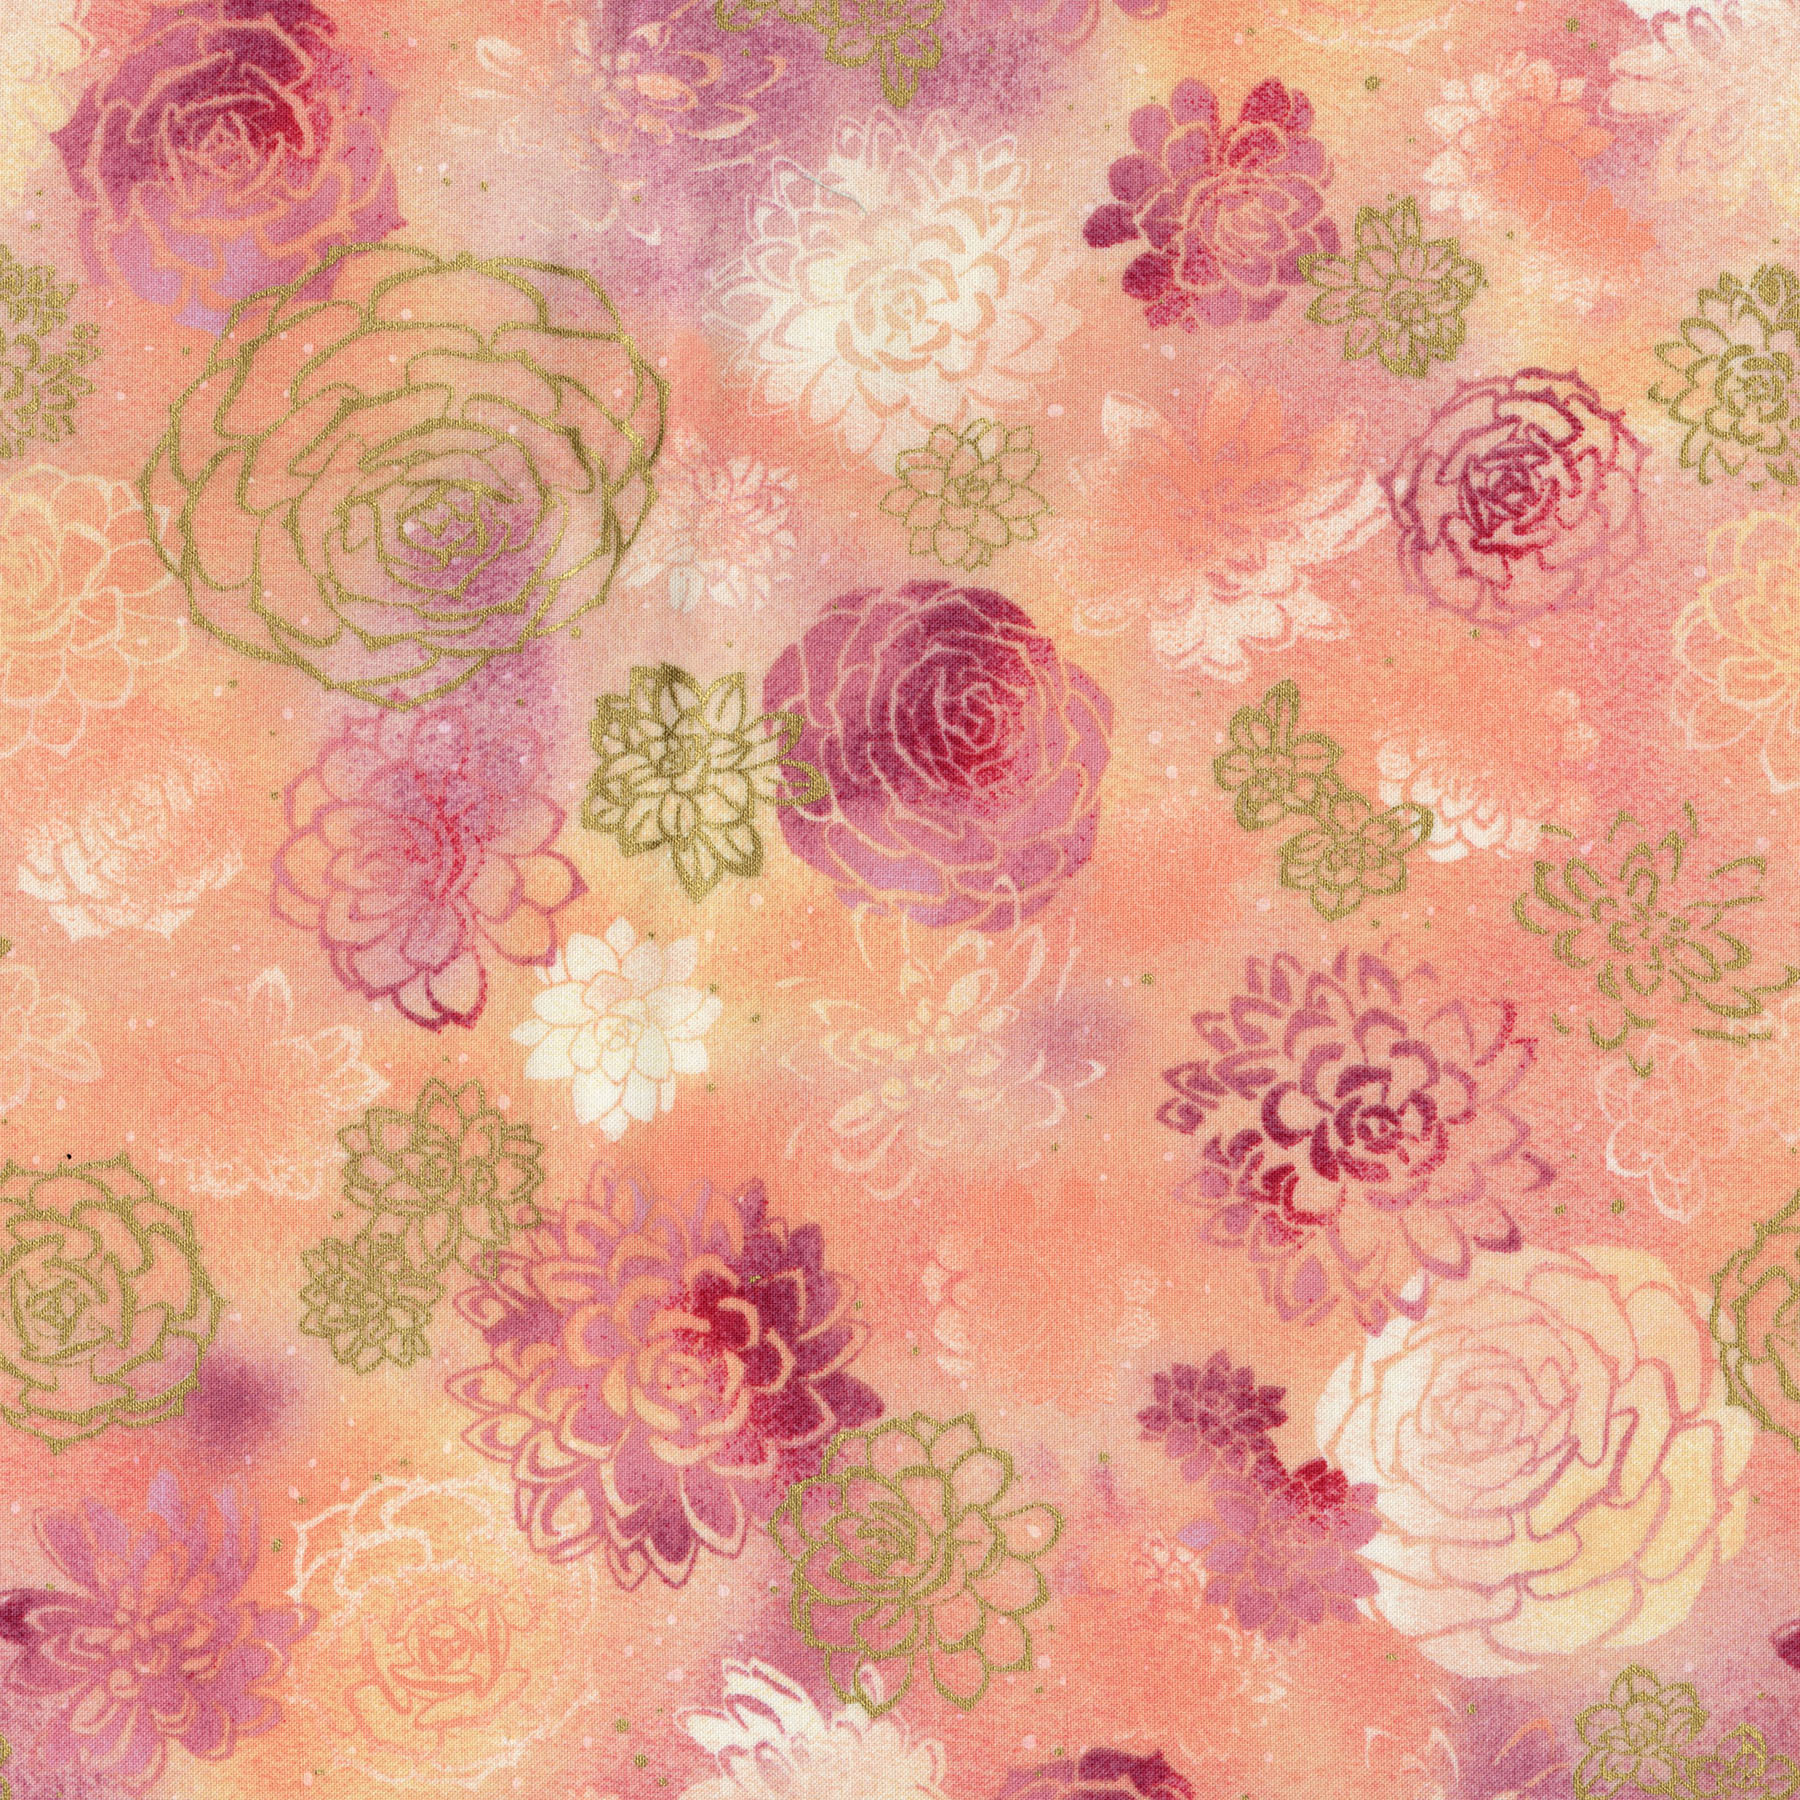 2889-001 SUMMER BLOOMS-CORAL